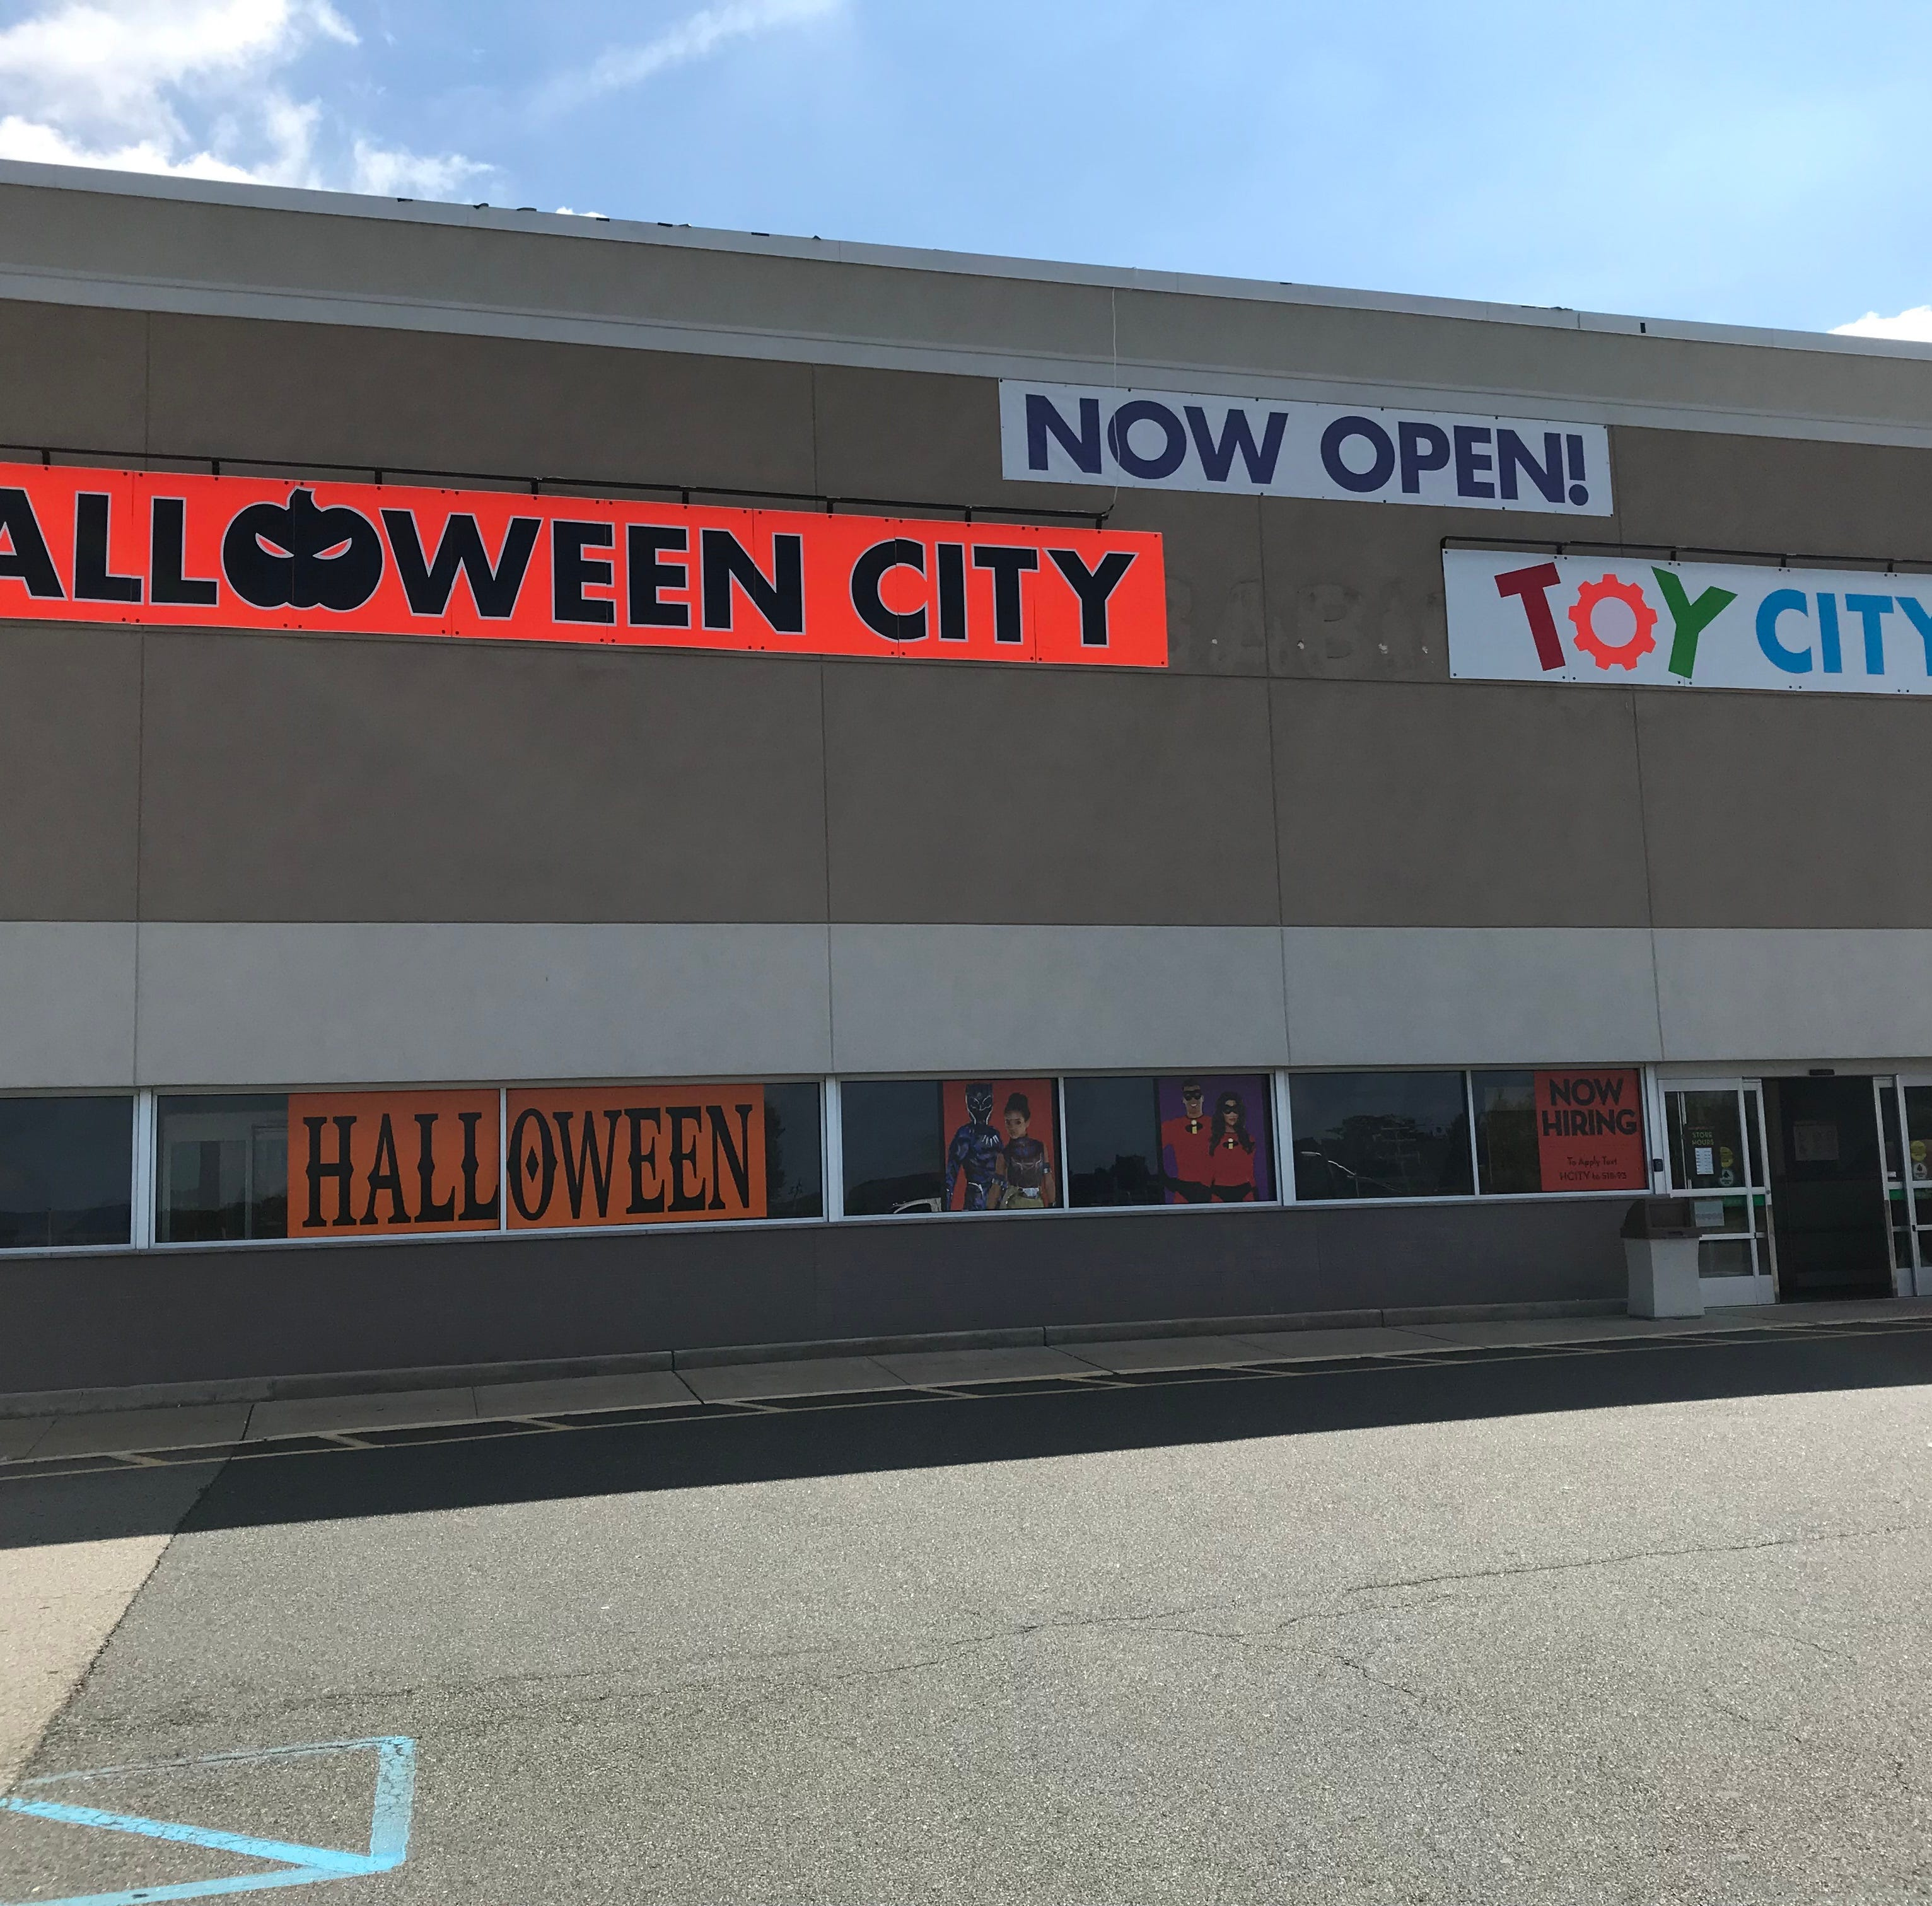 A new player enters the toy business: Toy City opens in Rockaway, two other stores planned